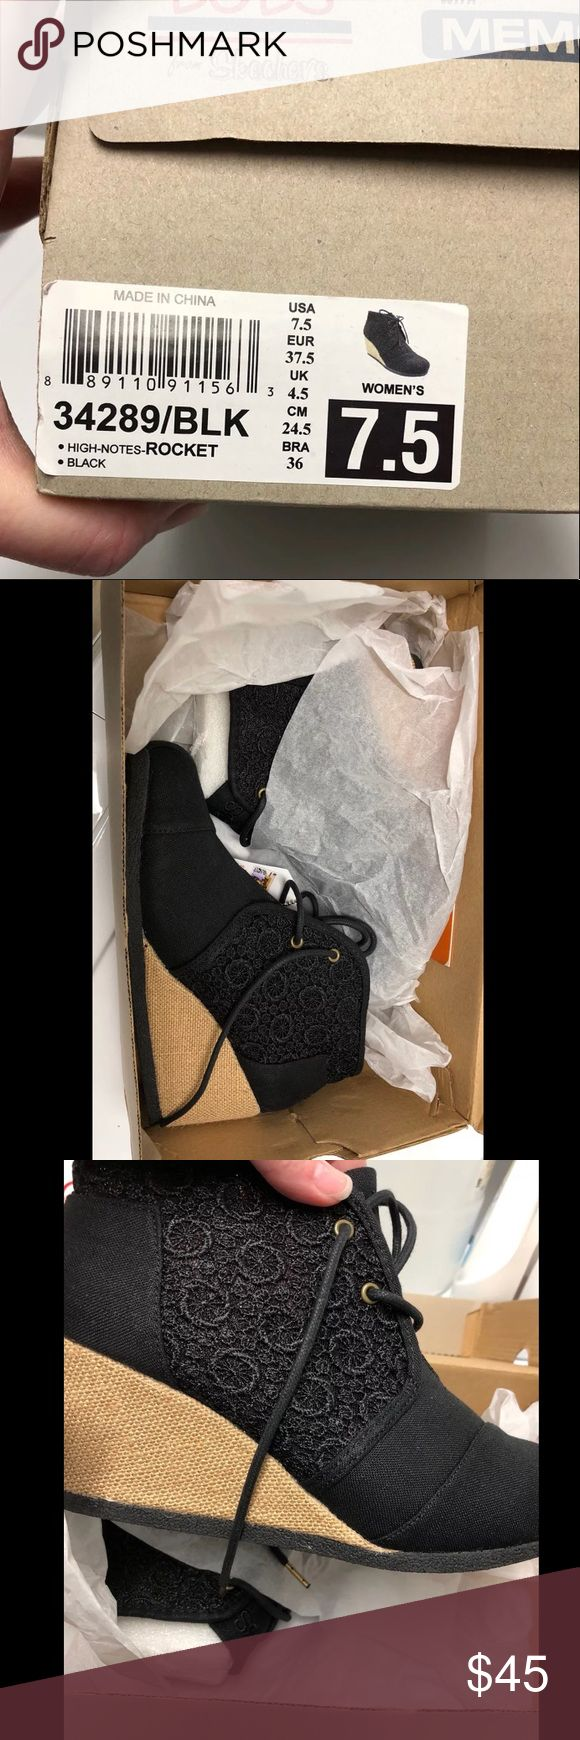 NWT Skechers Bobs High Notes Rocket Black Wedge New with tags still attached and still in the box. Retail is $49. I love them but I know I'm never going to wear them, I really only wear flats. The stuff is missing out of one shoe as it was tried on in store and they threw it out. The other shoe still has all the paper and styrofoam stuffing. Will be shipped with the box. The last photo is the other color this style came in to show you the detail on the side, that it is a floral/swirl print…